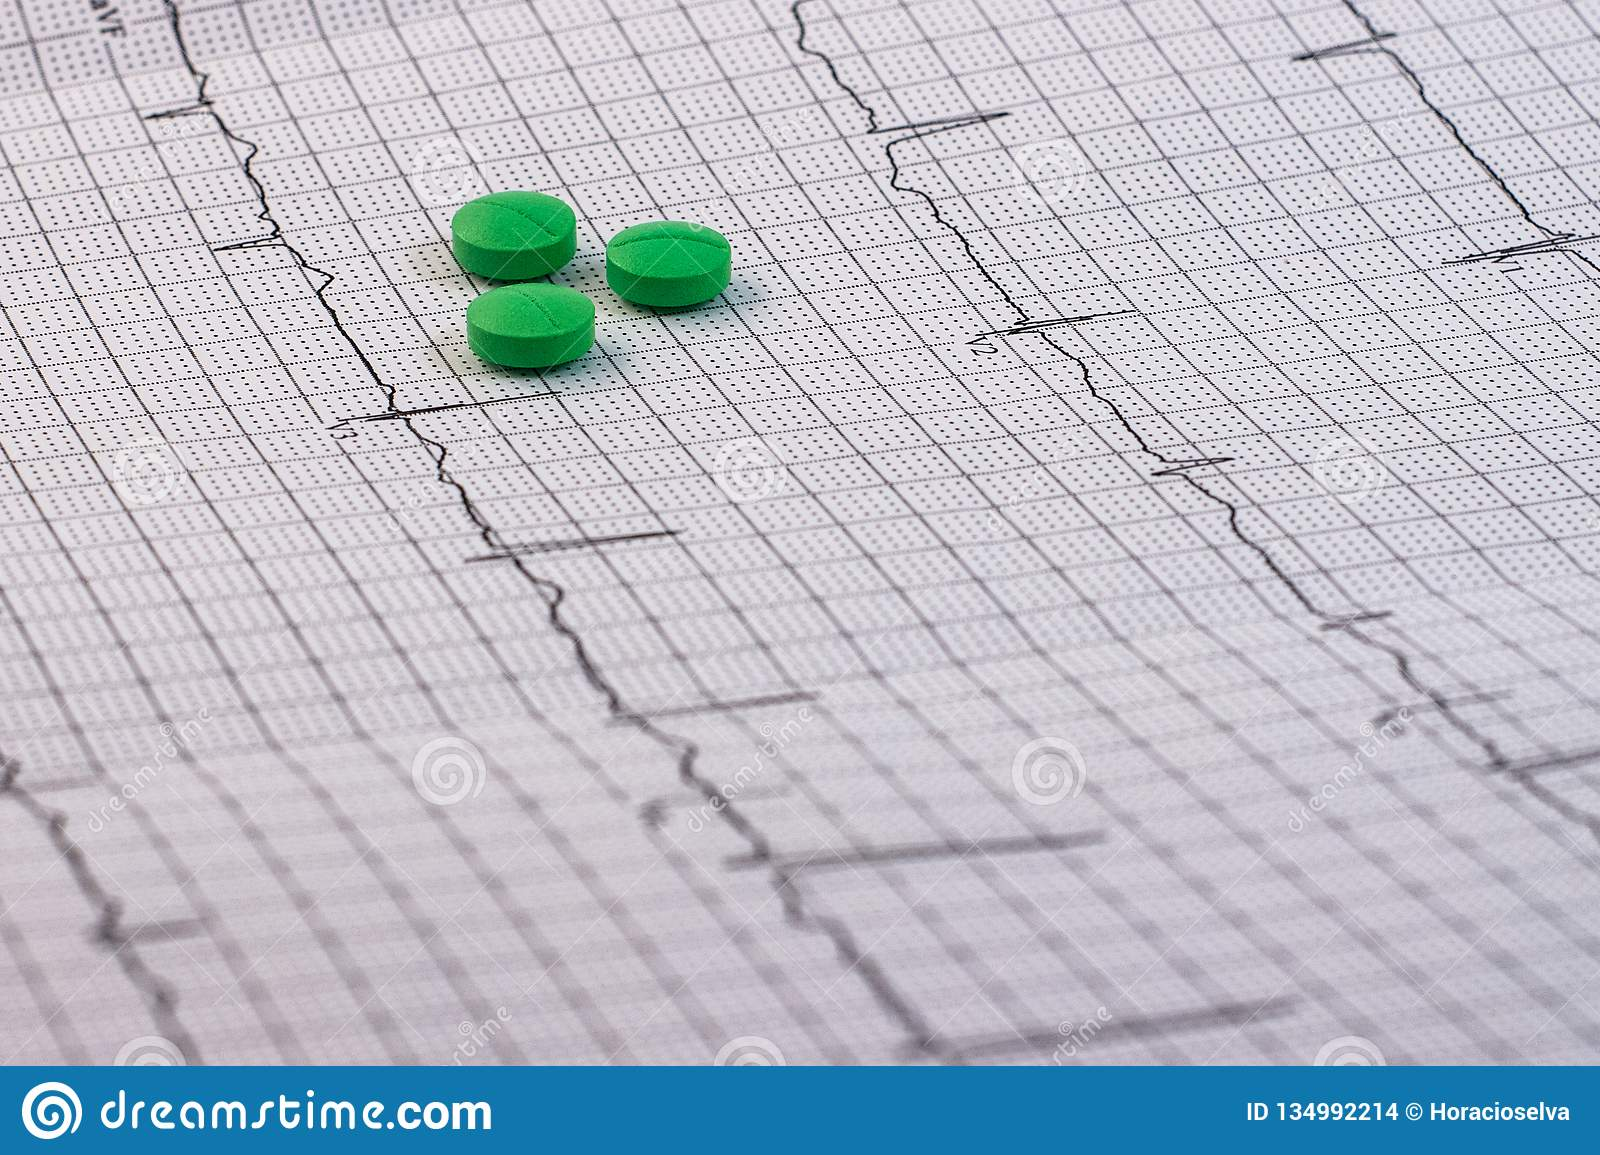 Pills and medicines of green color on an electrocardiogram